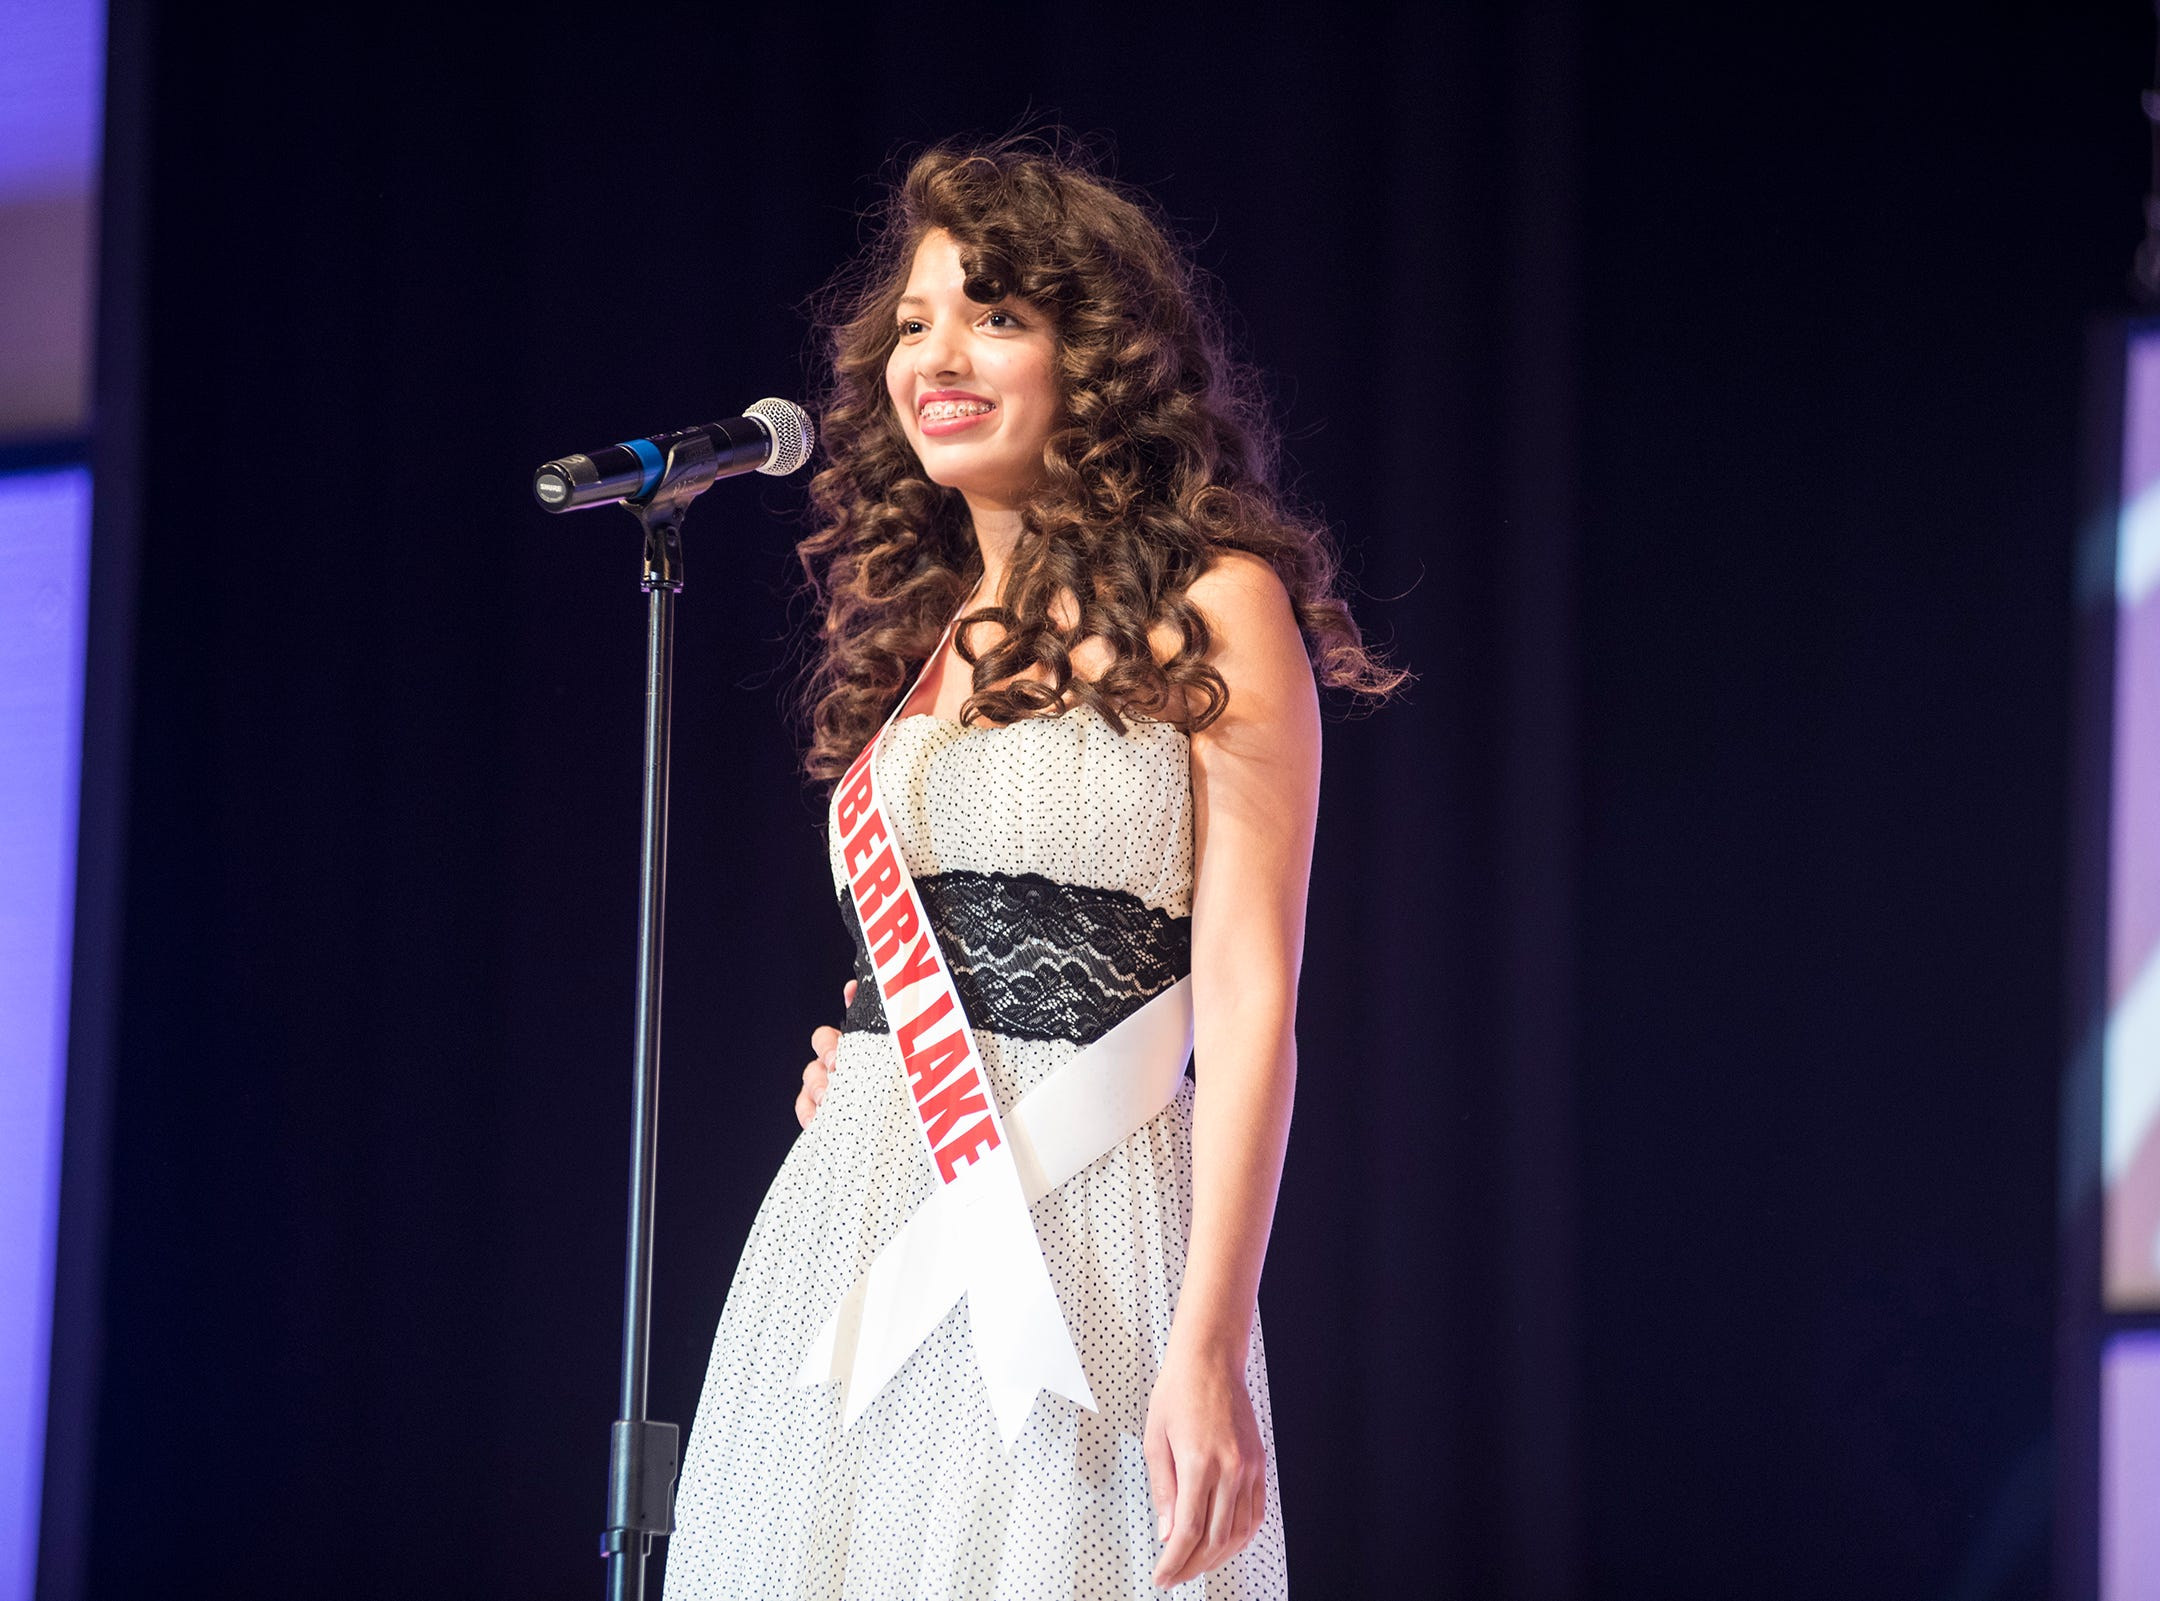 Miss Strawberry Lake Teen Emily Oliverio introduces herself Saturday, Sept. 22, 2018 at the start of the Miss Michigan Teen USA competition at McMorran Theater.